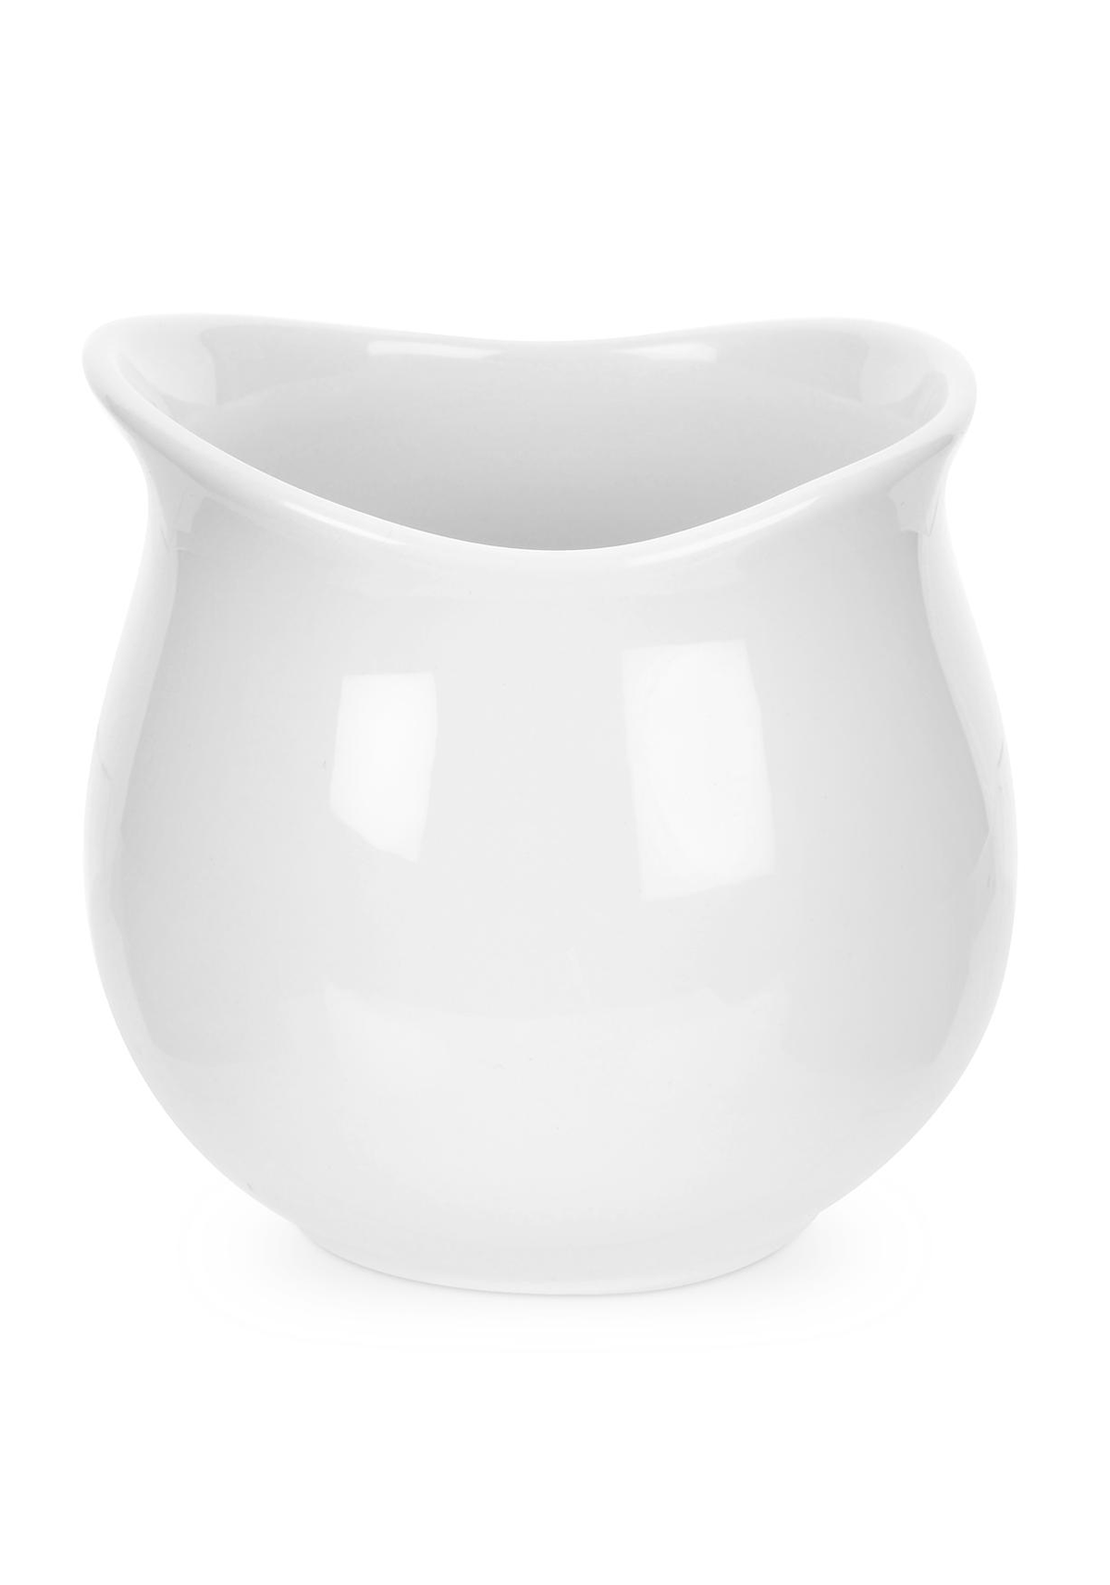 Portmeirion Porcelain Chip Holder, White